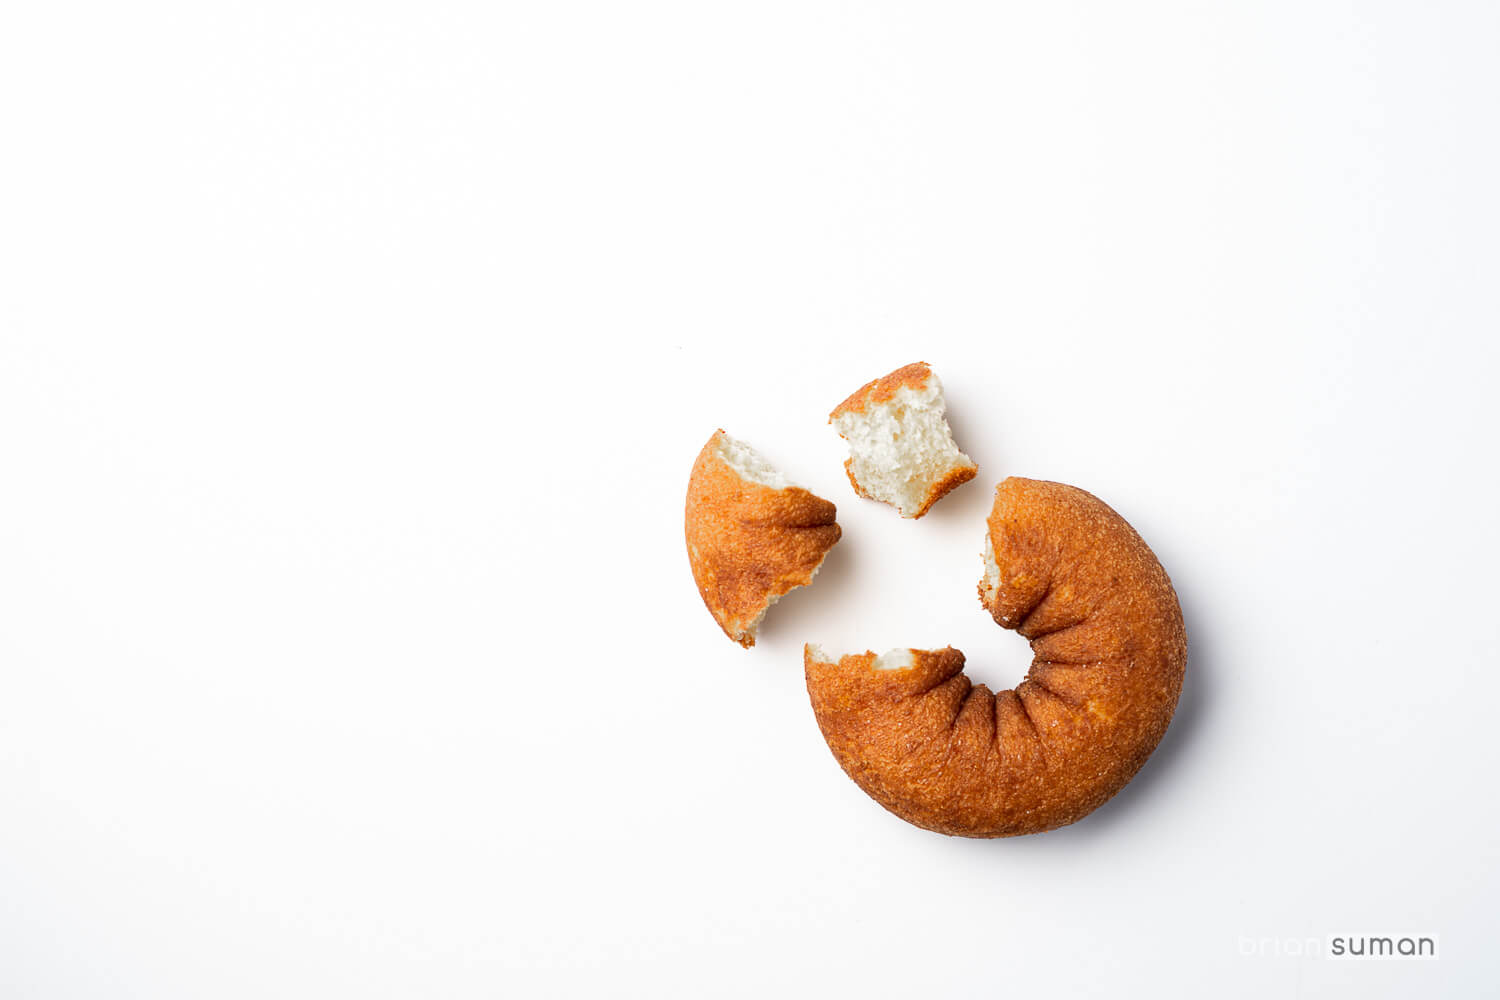 Donuts - Breakfast Series-0001-Brian Suman Photography.jpg